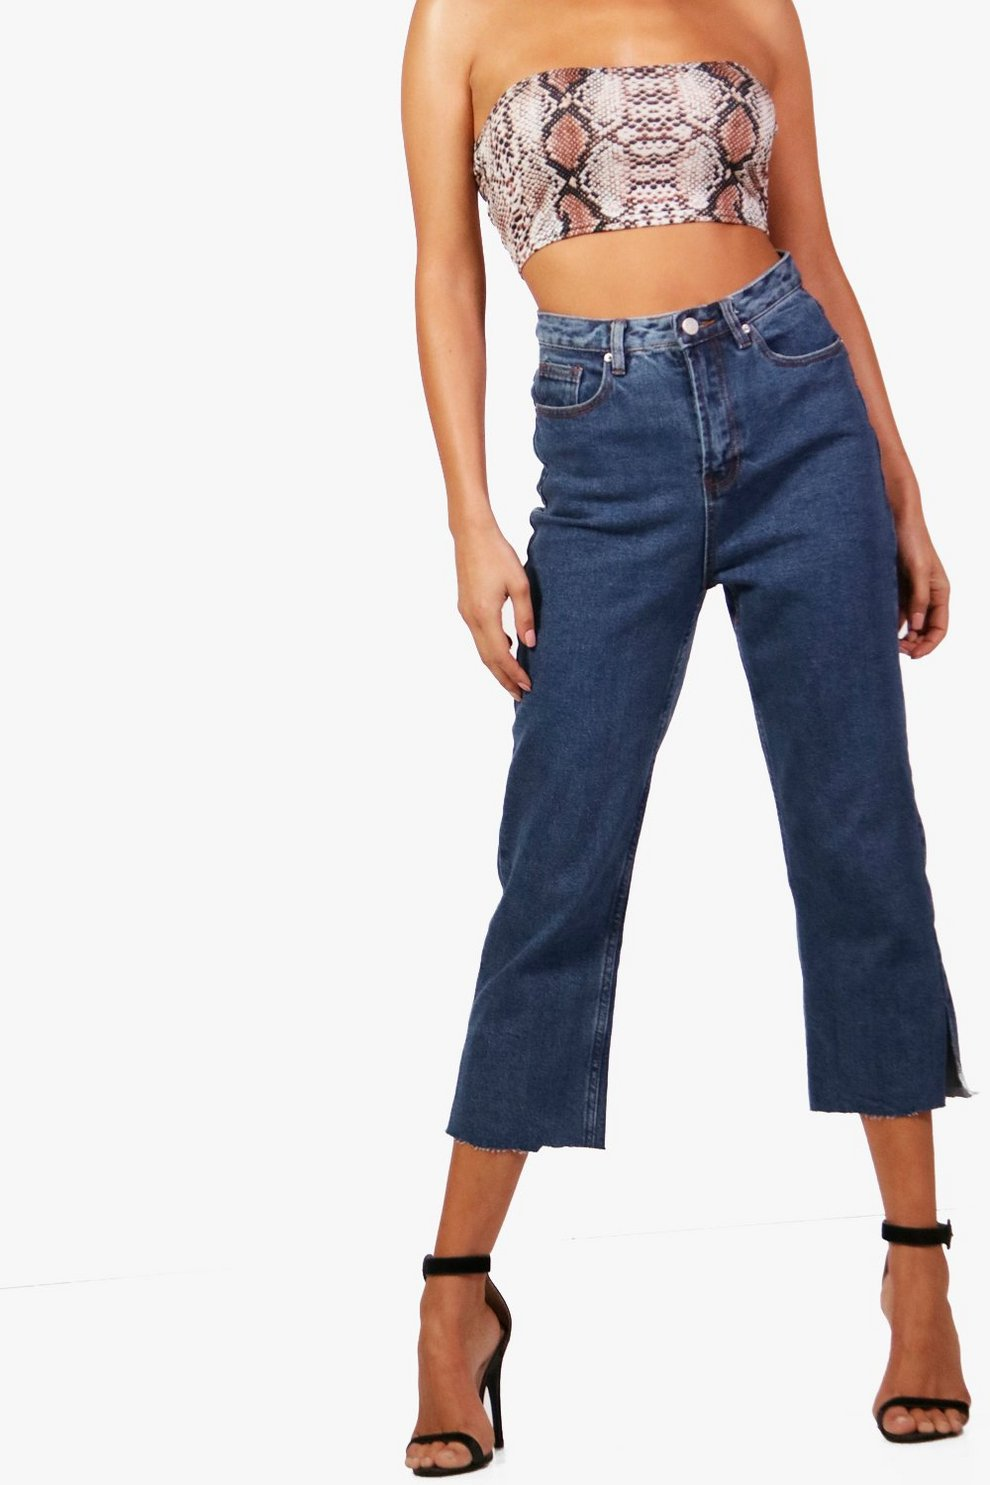 Boohoo High Waisted Cropped Straight Leg Jeans Sale Online Shop mfHrSG